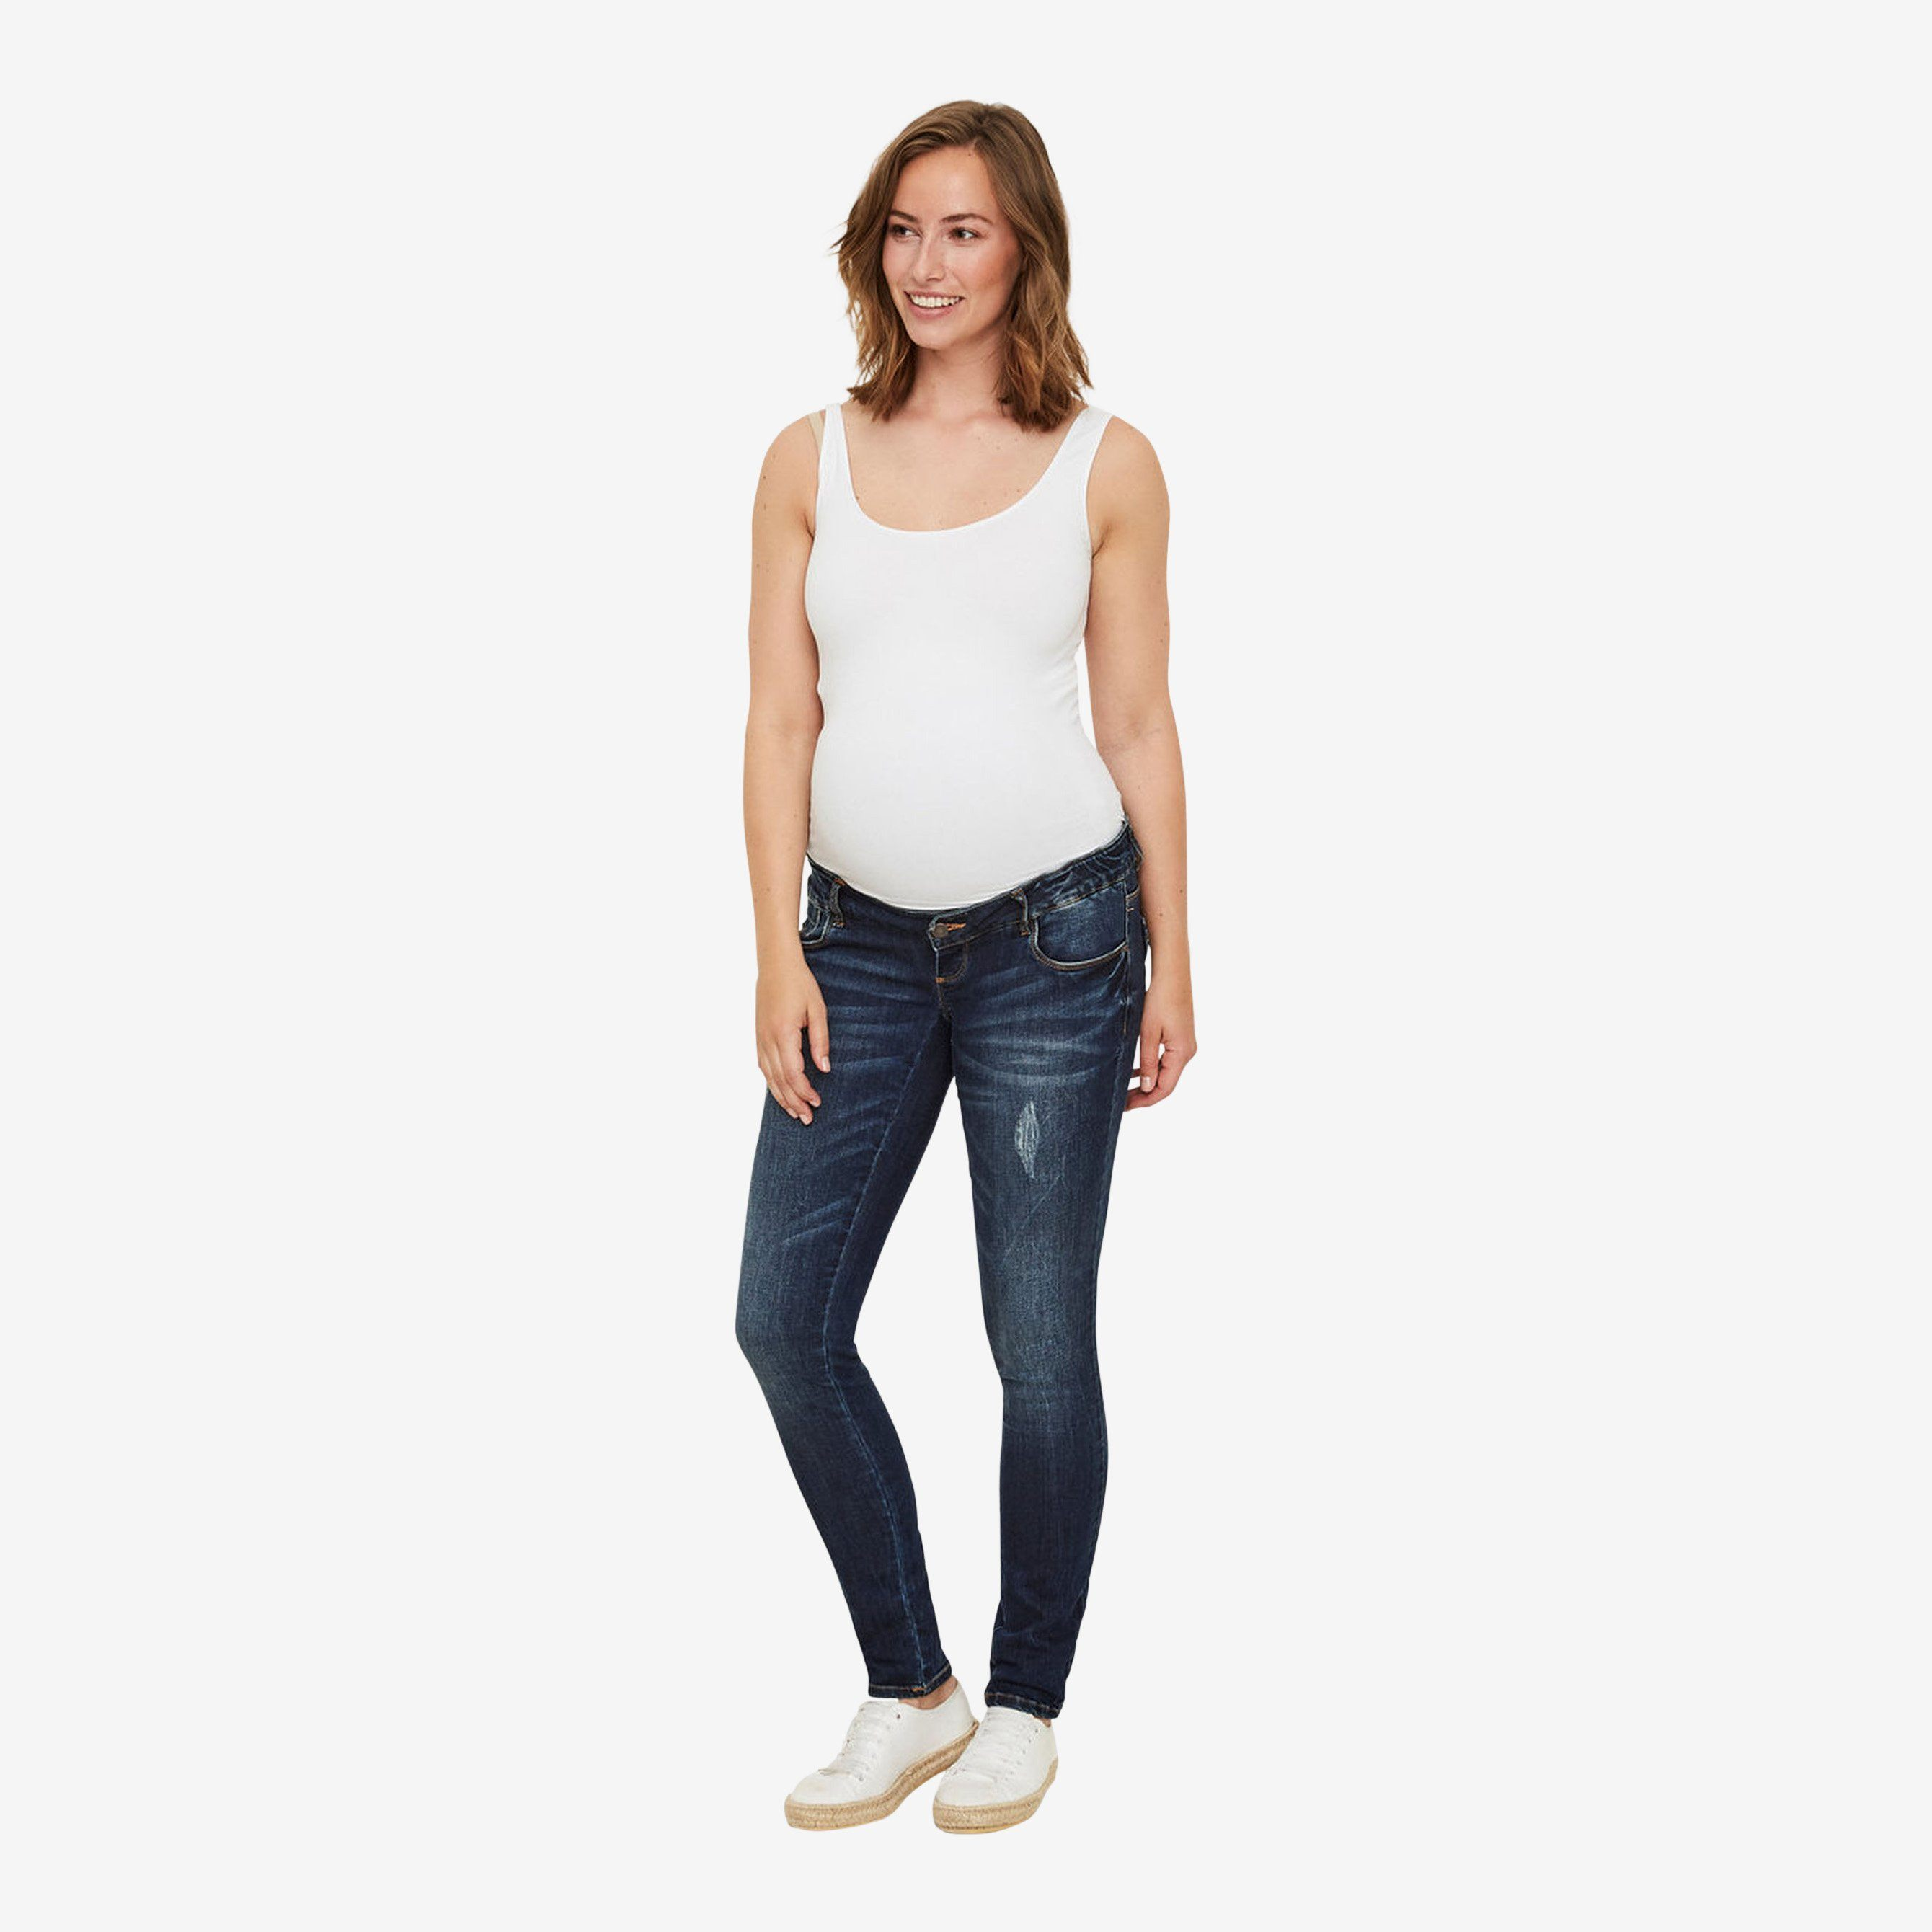 Slim fit ventejeans fra Mamalicious (denim)